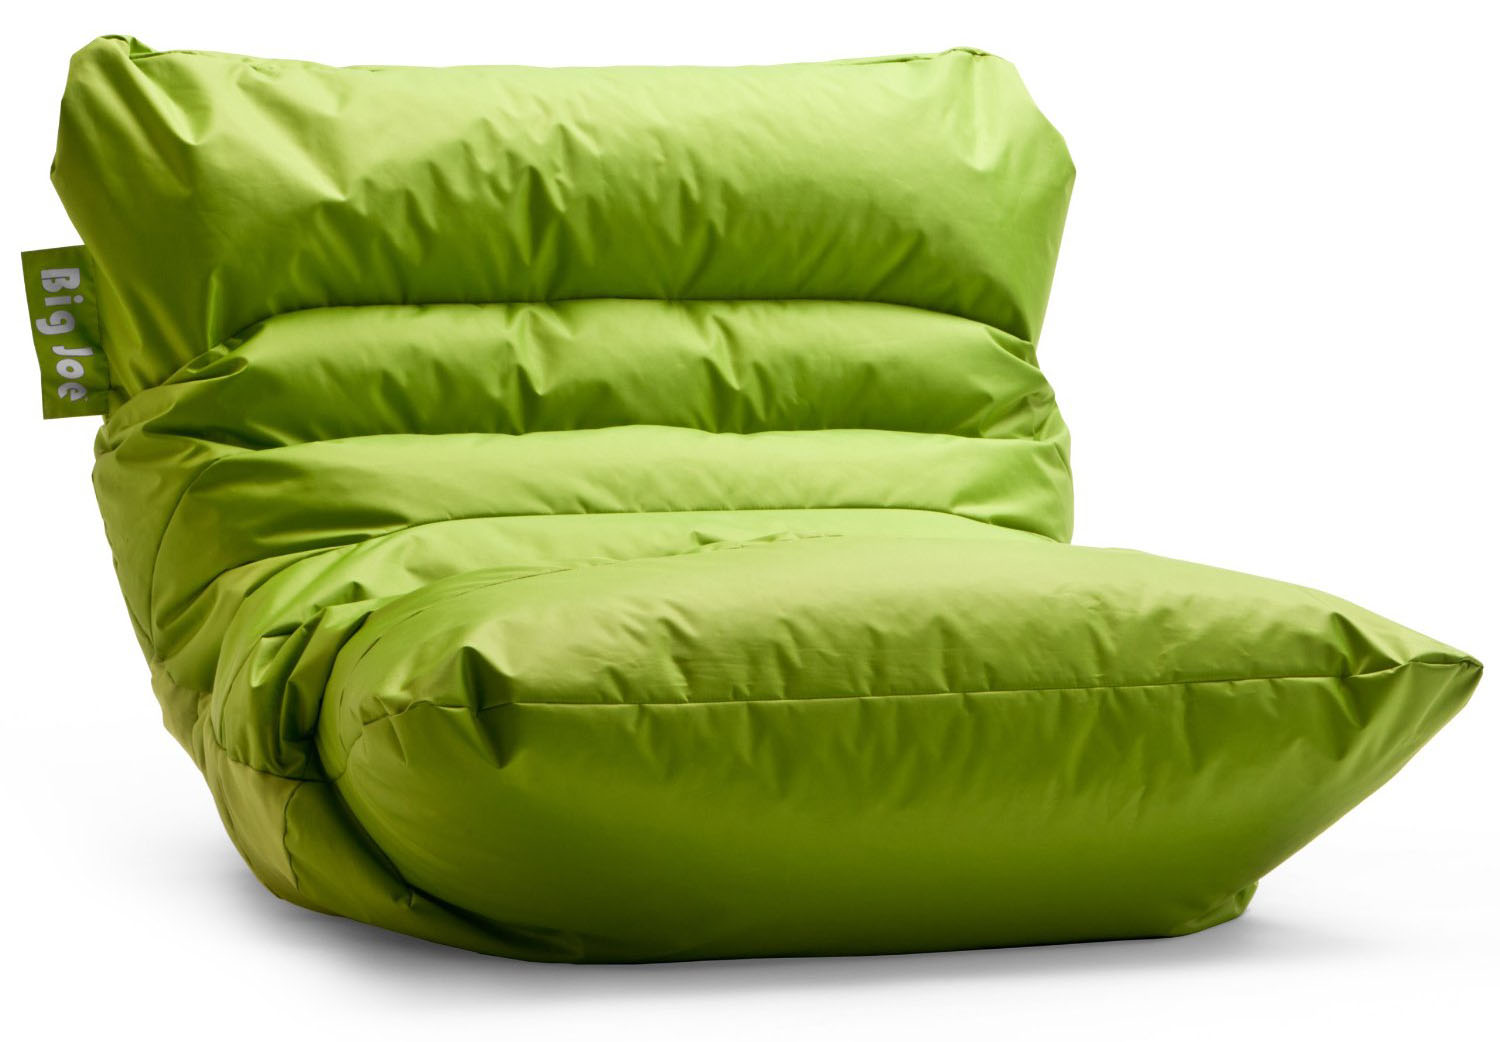 Beau Bean Bag Chairs For Adults And Kids